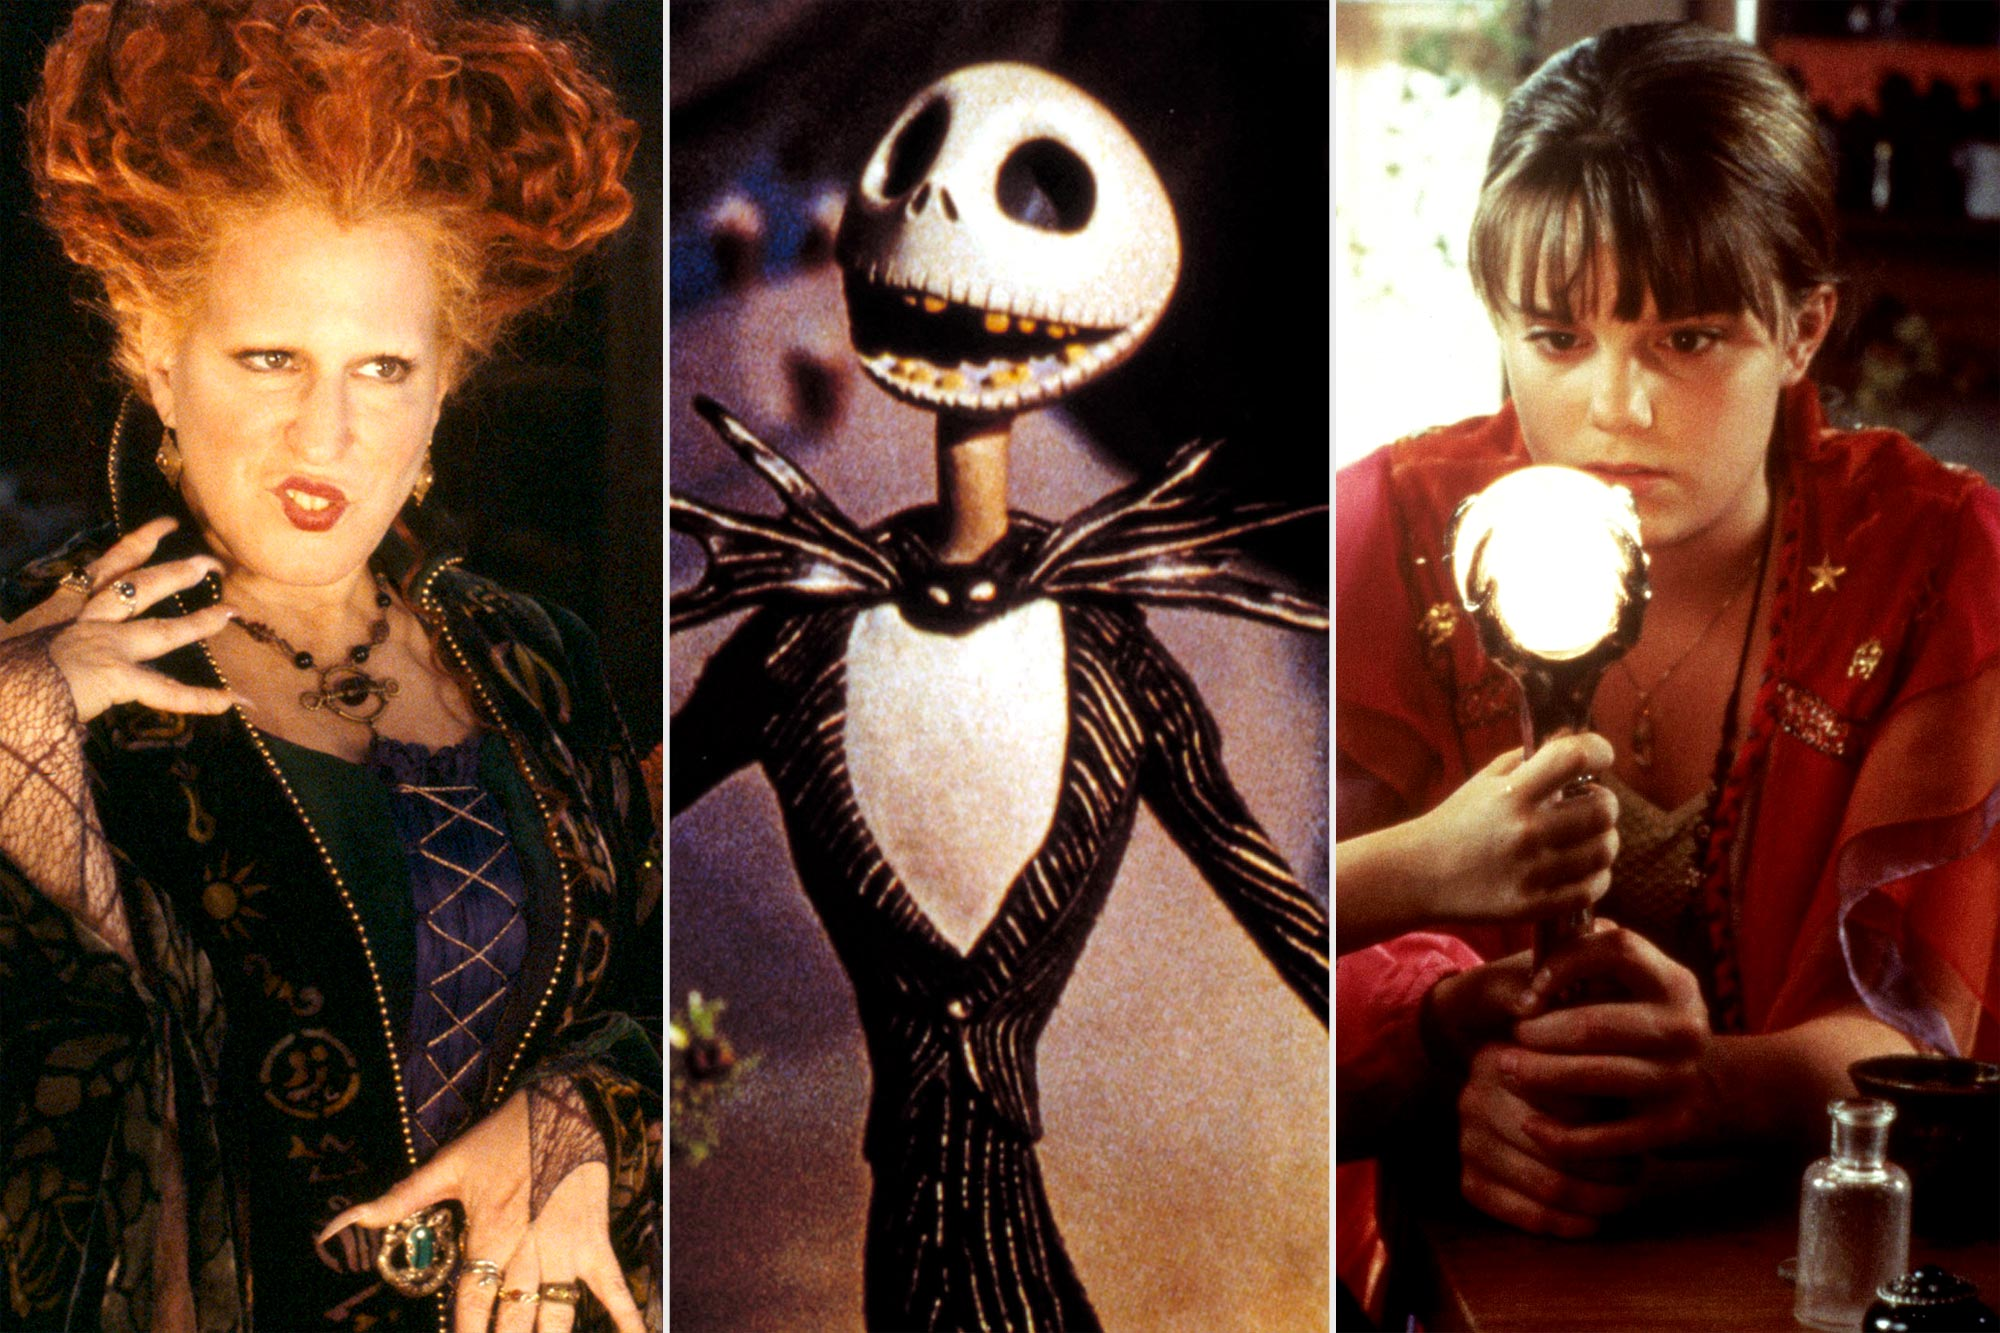 Family-friendly Halloween films